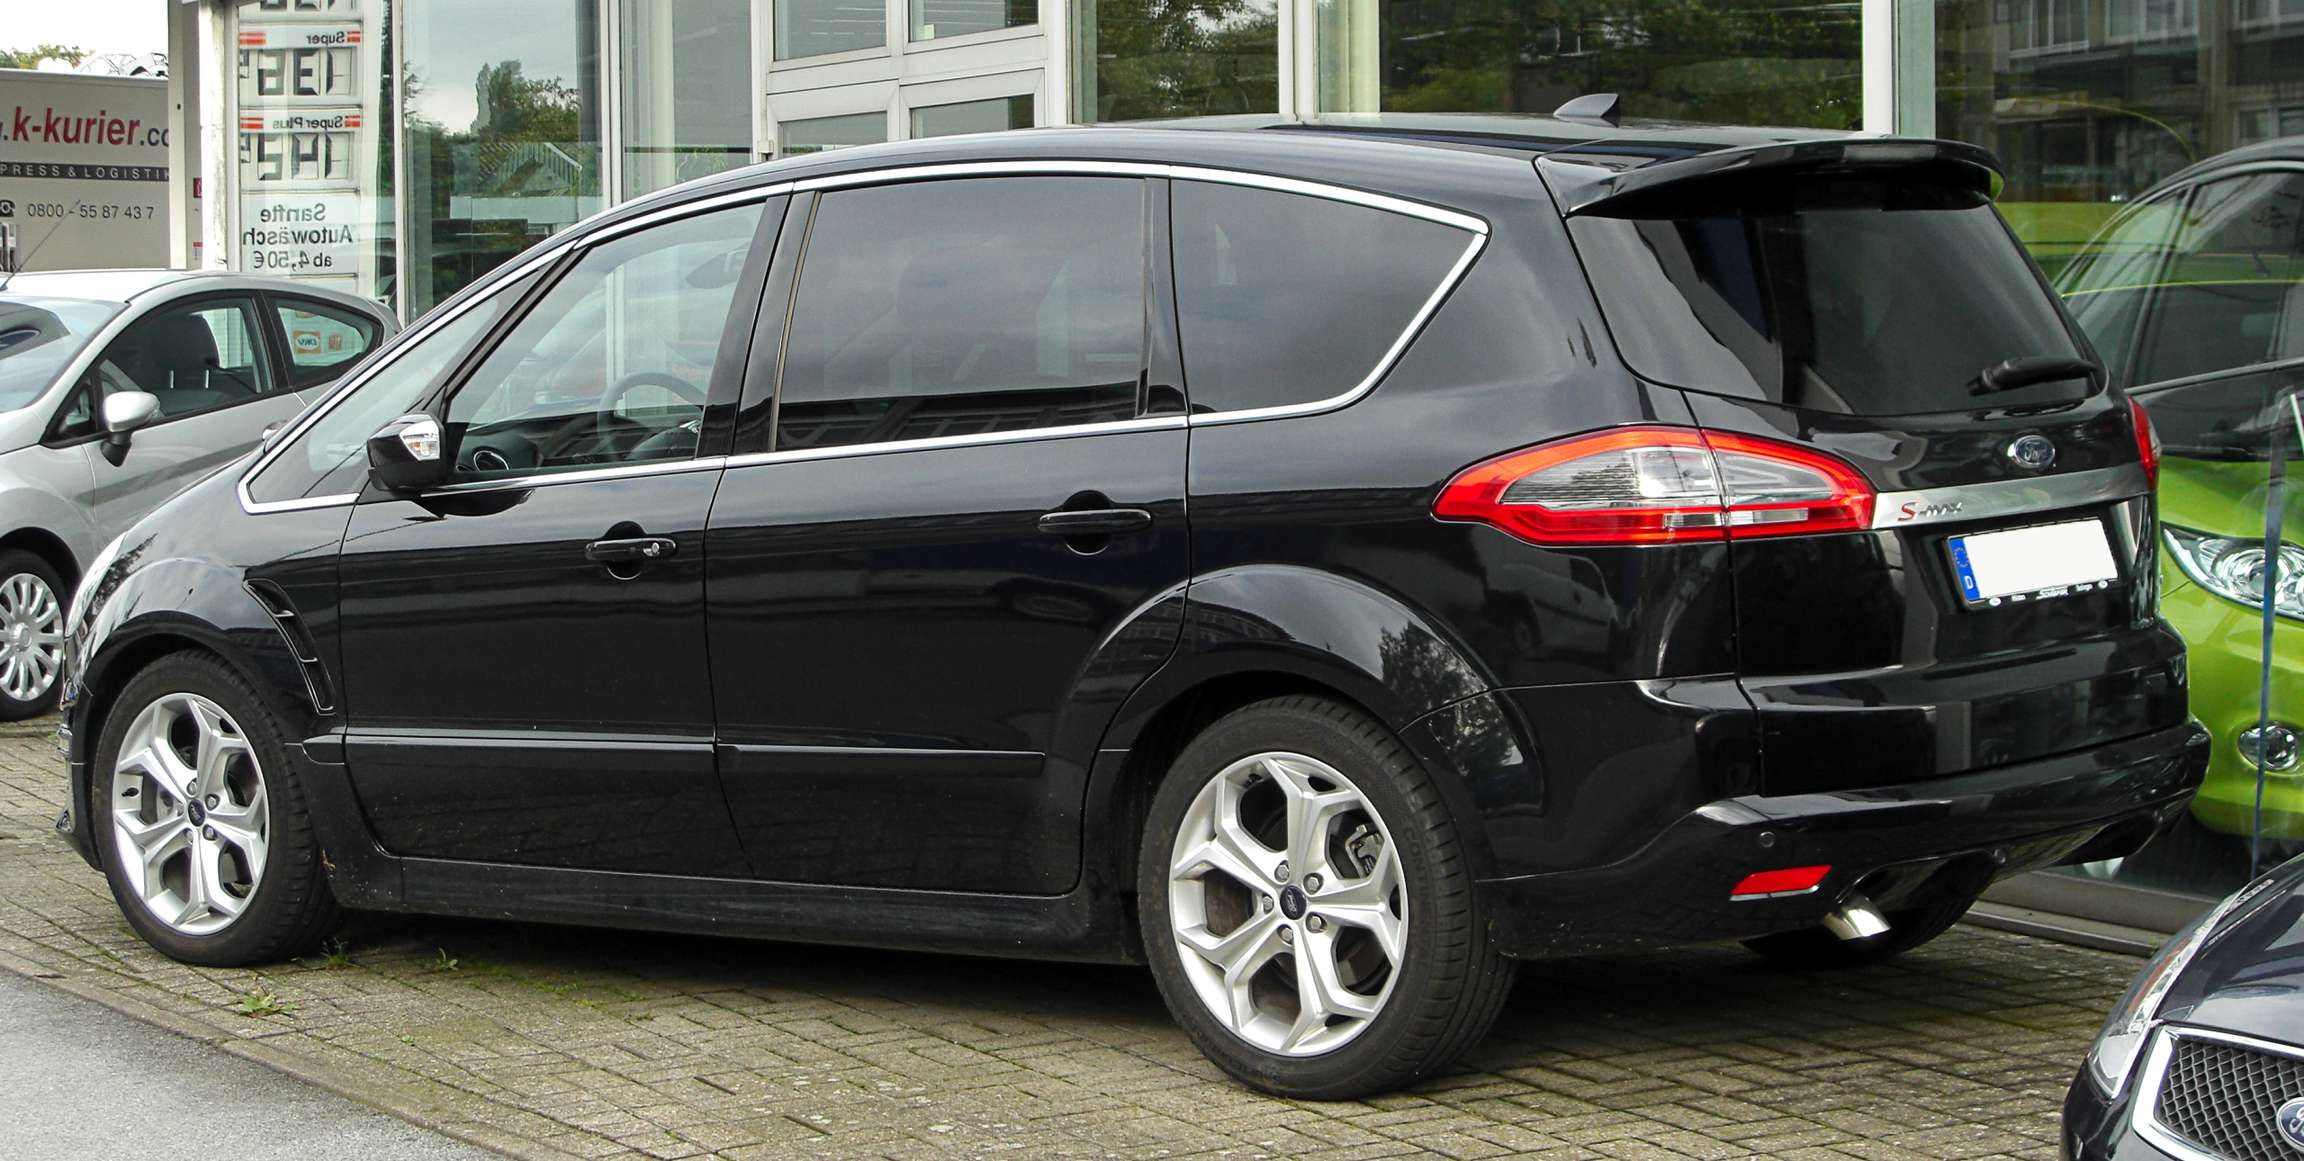 Ford S-Max #7665790